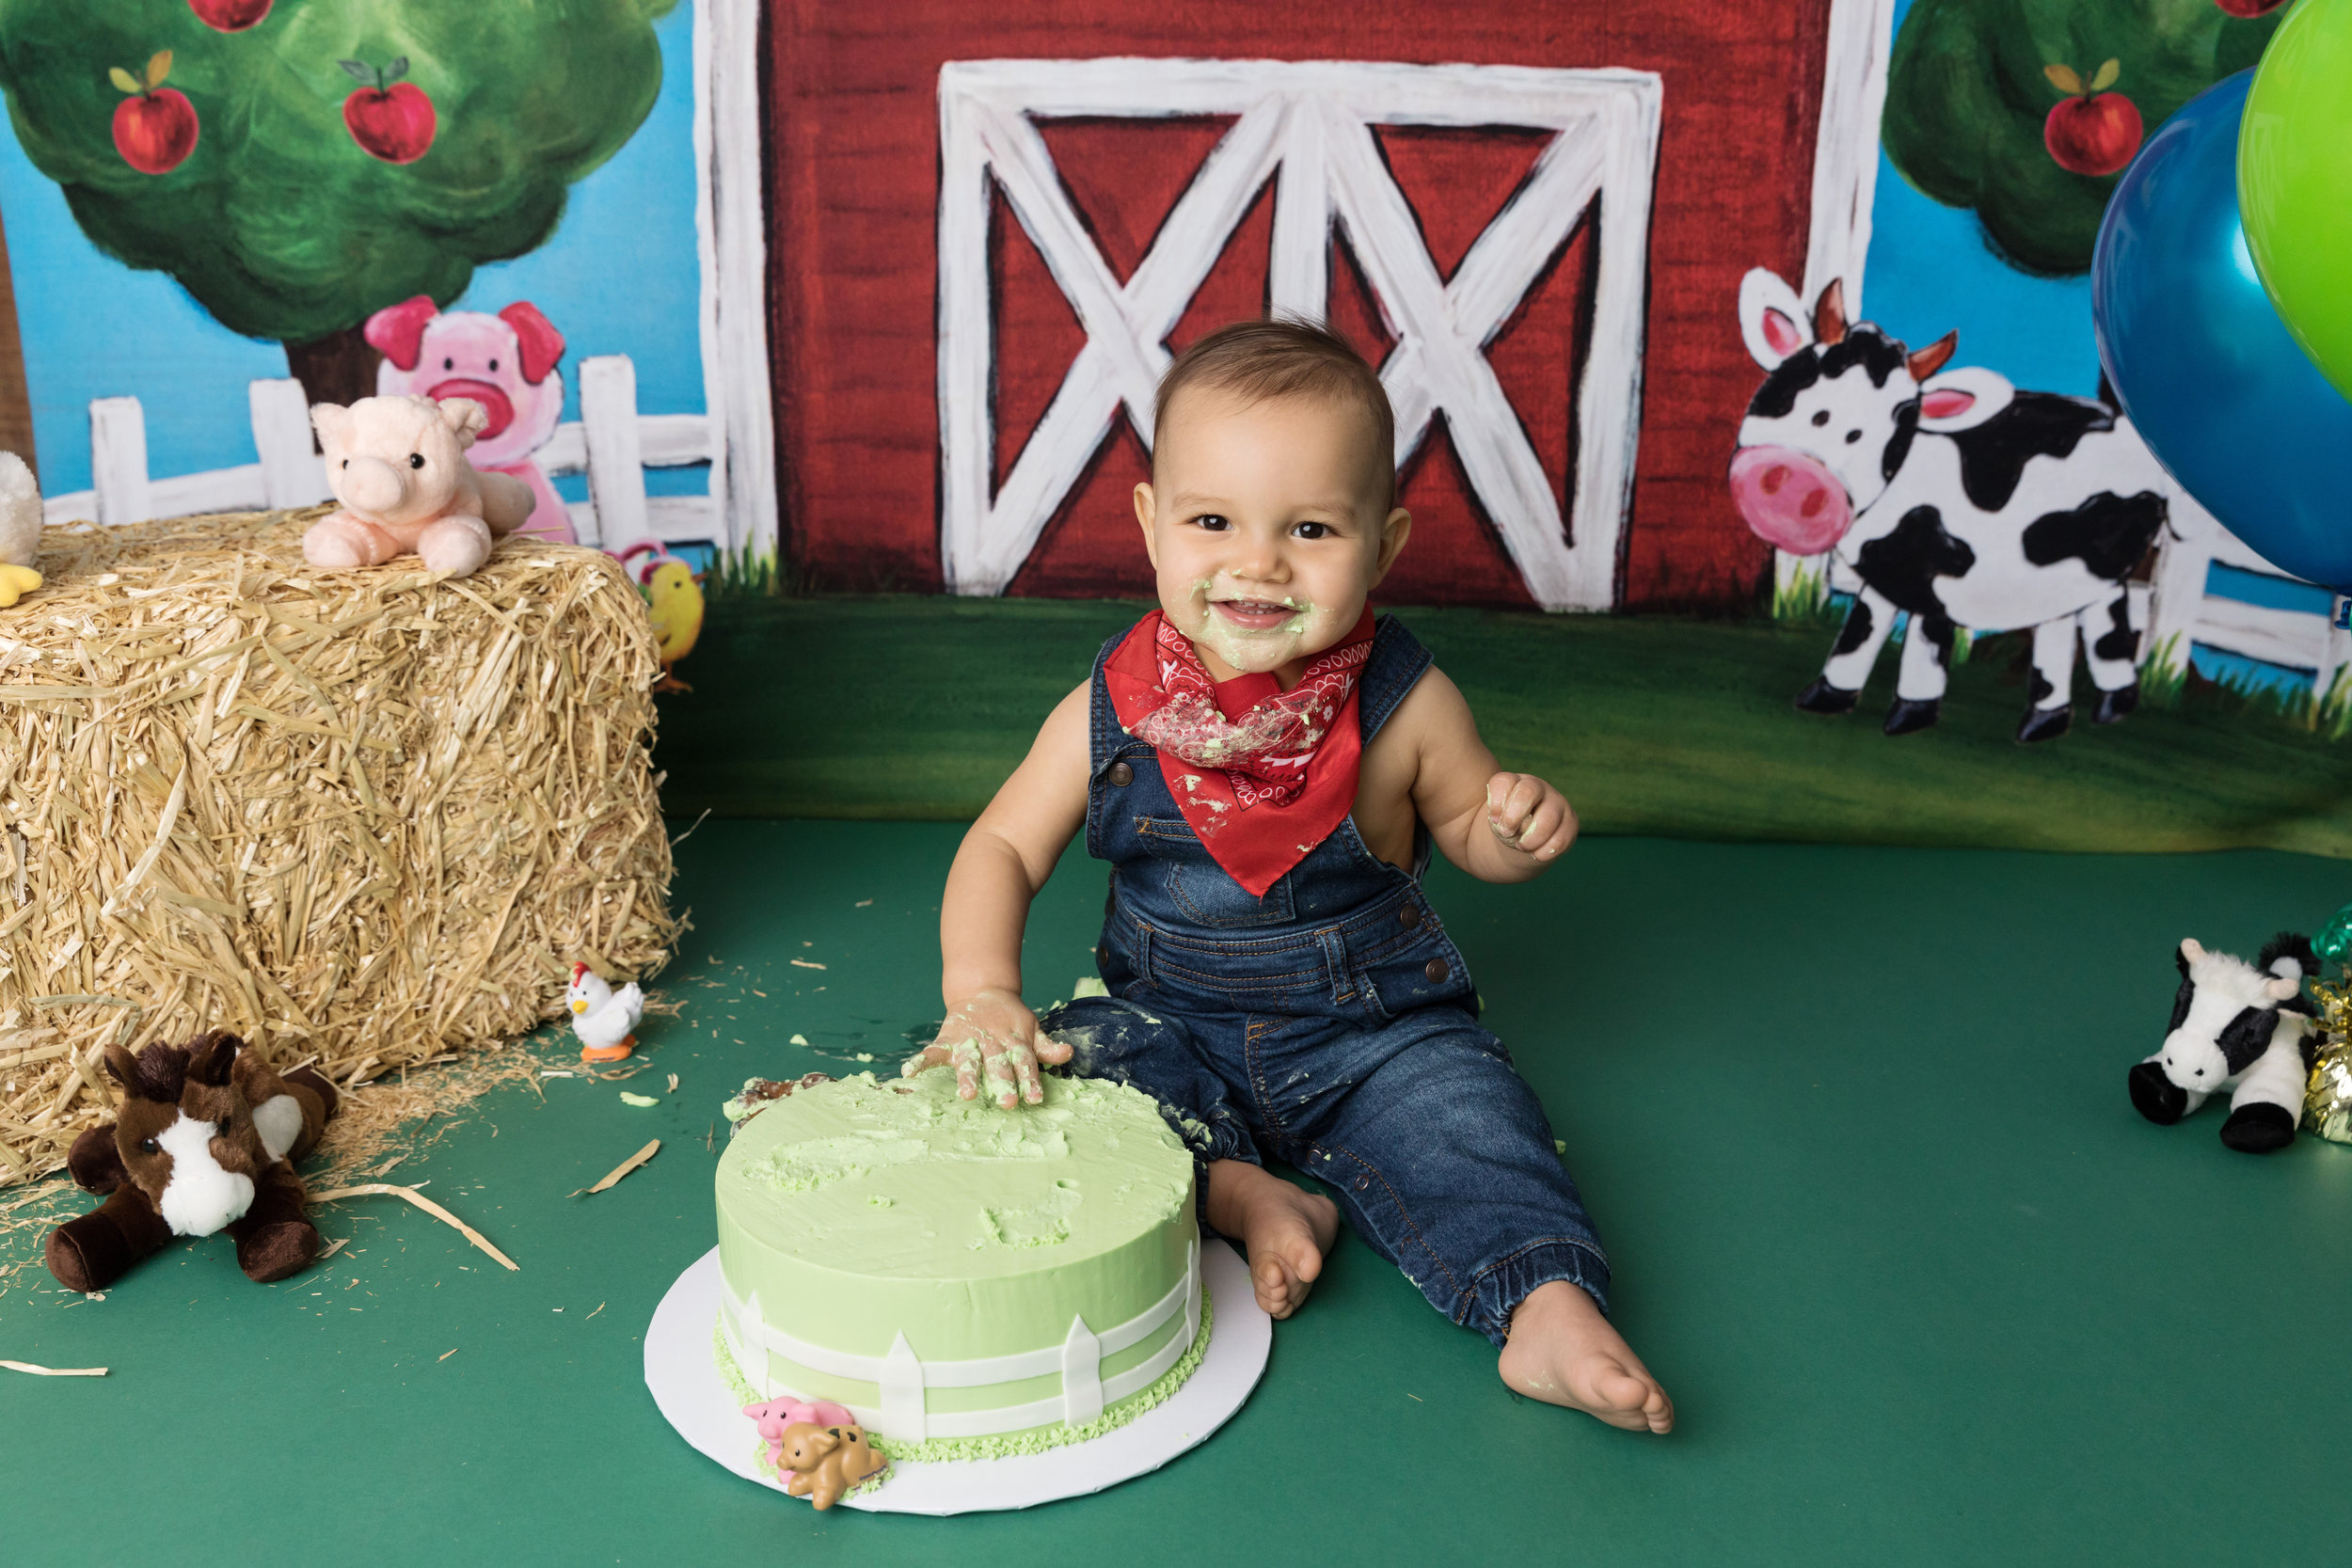 Farm theme cake smash with barn and farm animals and baby boy smashing birthday cake.